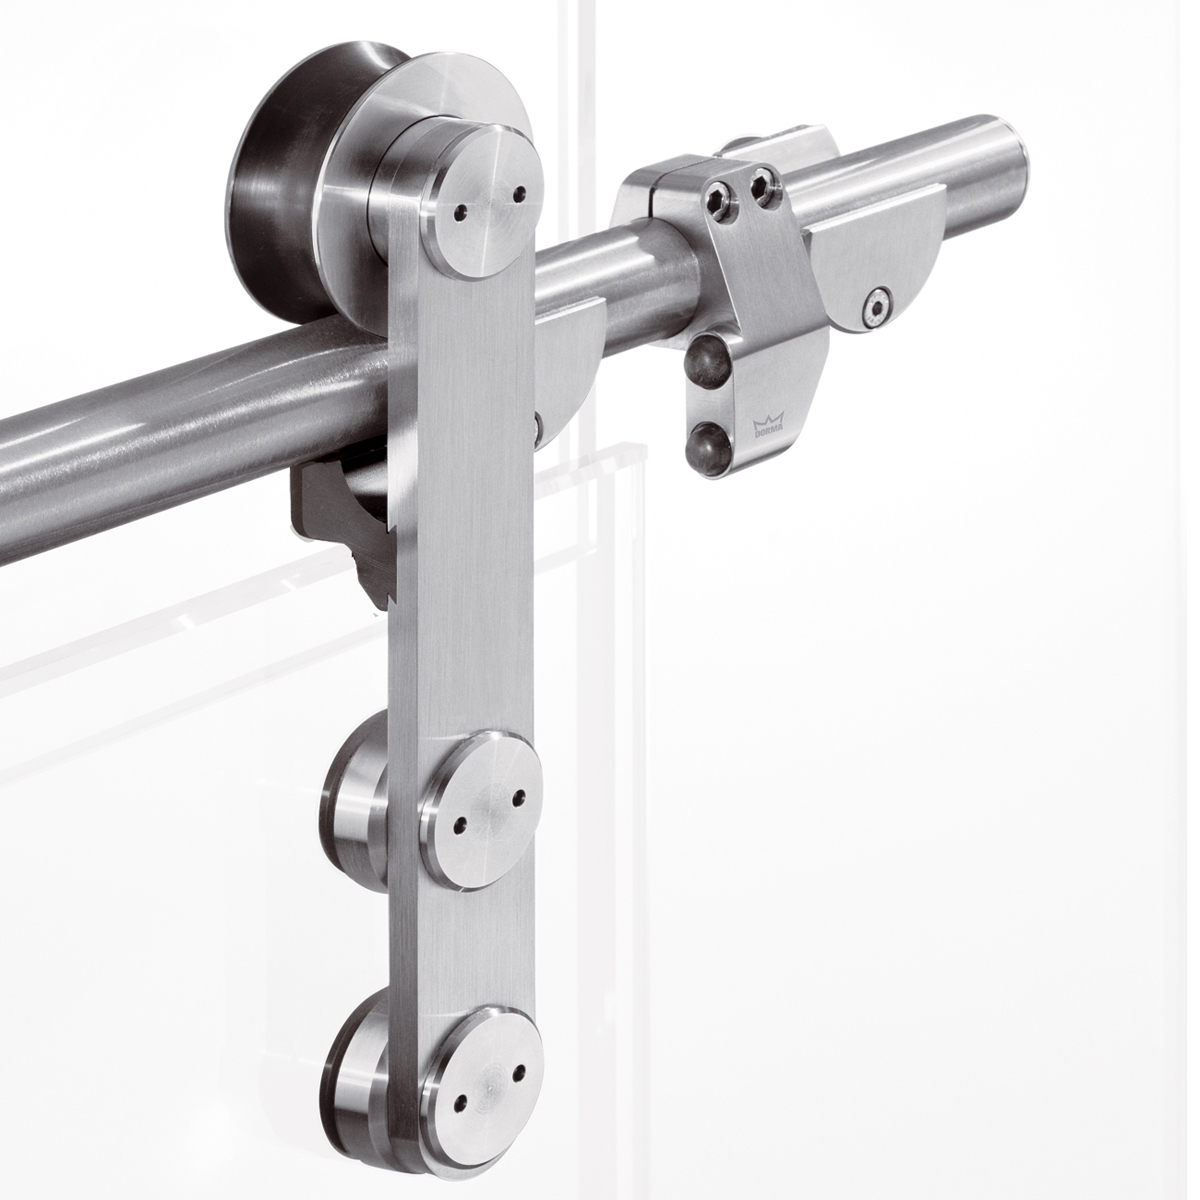 Dorma manet compact concept sliding door systems for Sliding door fittings